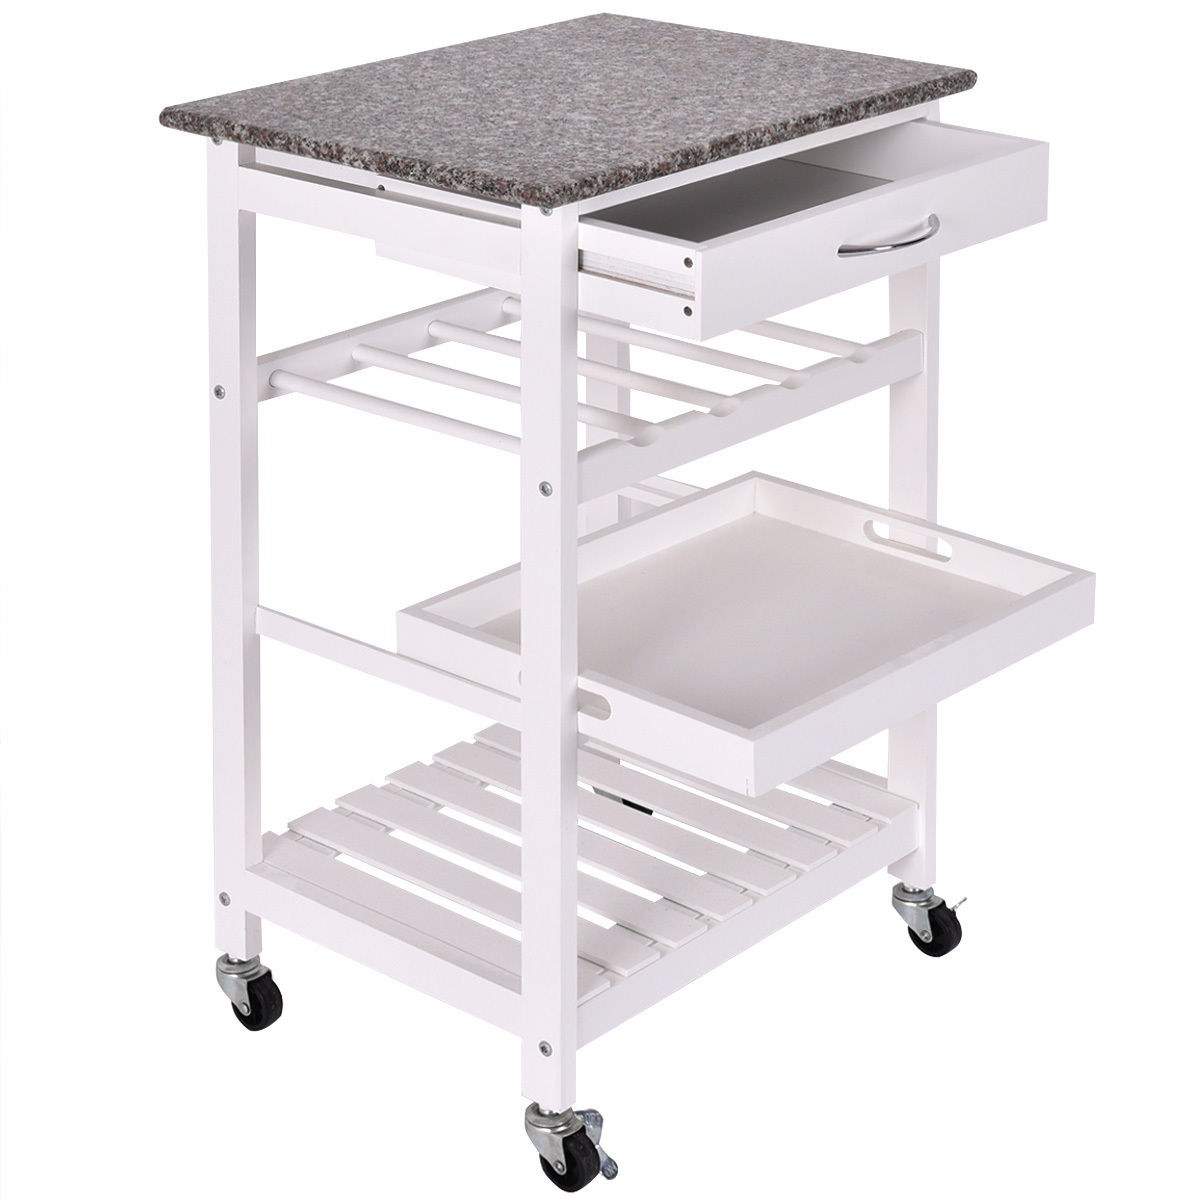 Stenstorp Kitchen Trolley White Oak 79x51x90 Cm Ikea Inside White Kitchen Trolley Design